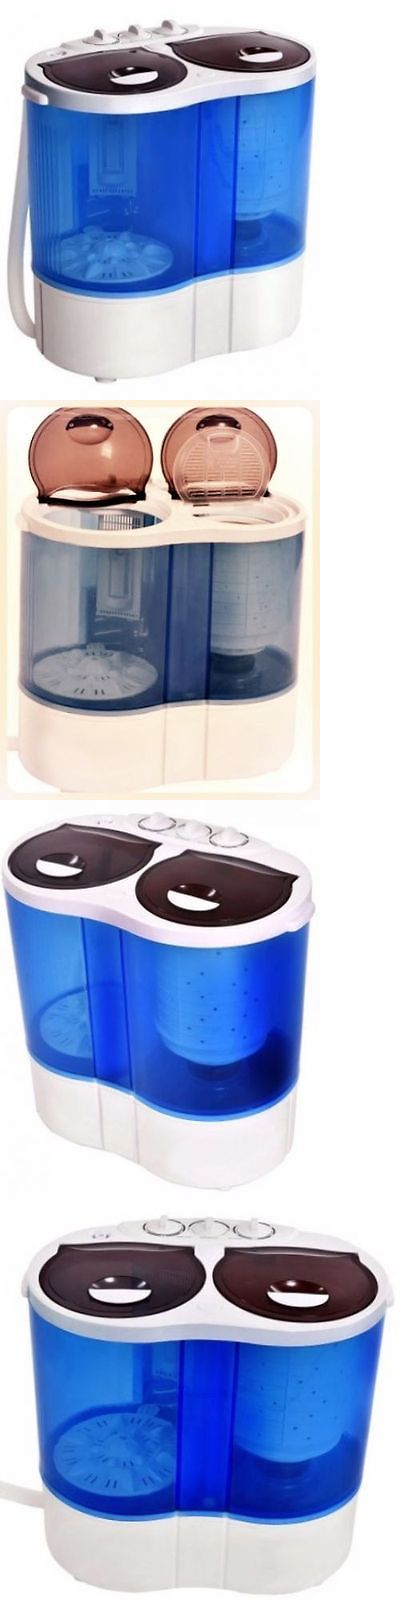 Washer and Dryer Sets 71257: Washing Machine Cleaner Dryer Apartment Washer Combo All In One Portable Spiner -> BUY IT NOW ONLY: $92.67 on eBay!